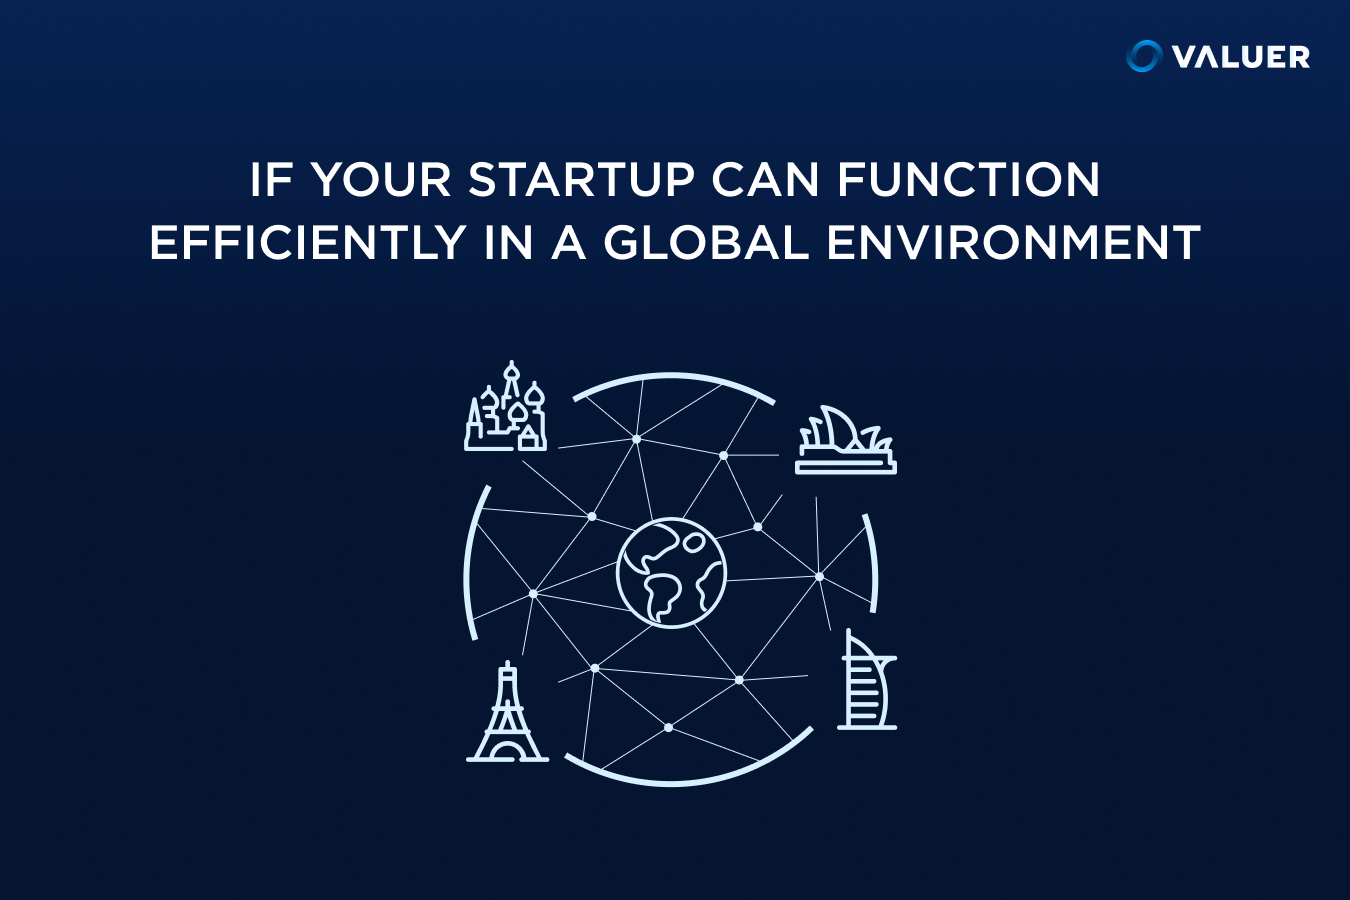 If Your Startup can Function Efficiently in a Global Environment image of an interconnected globe